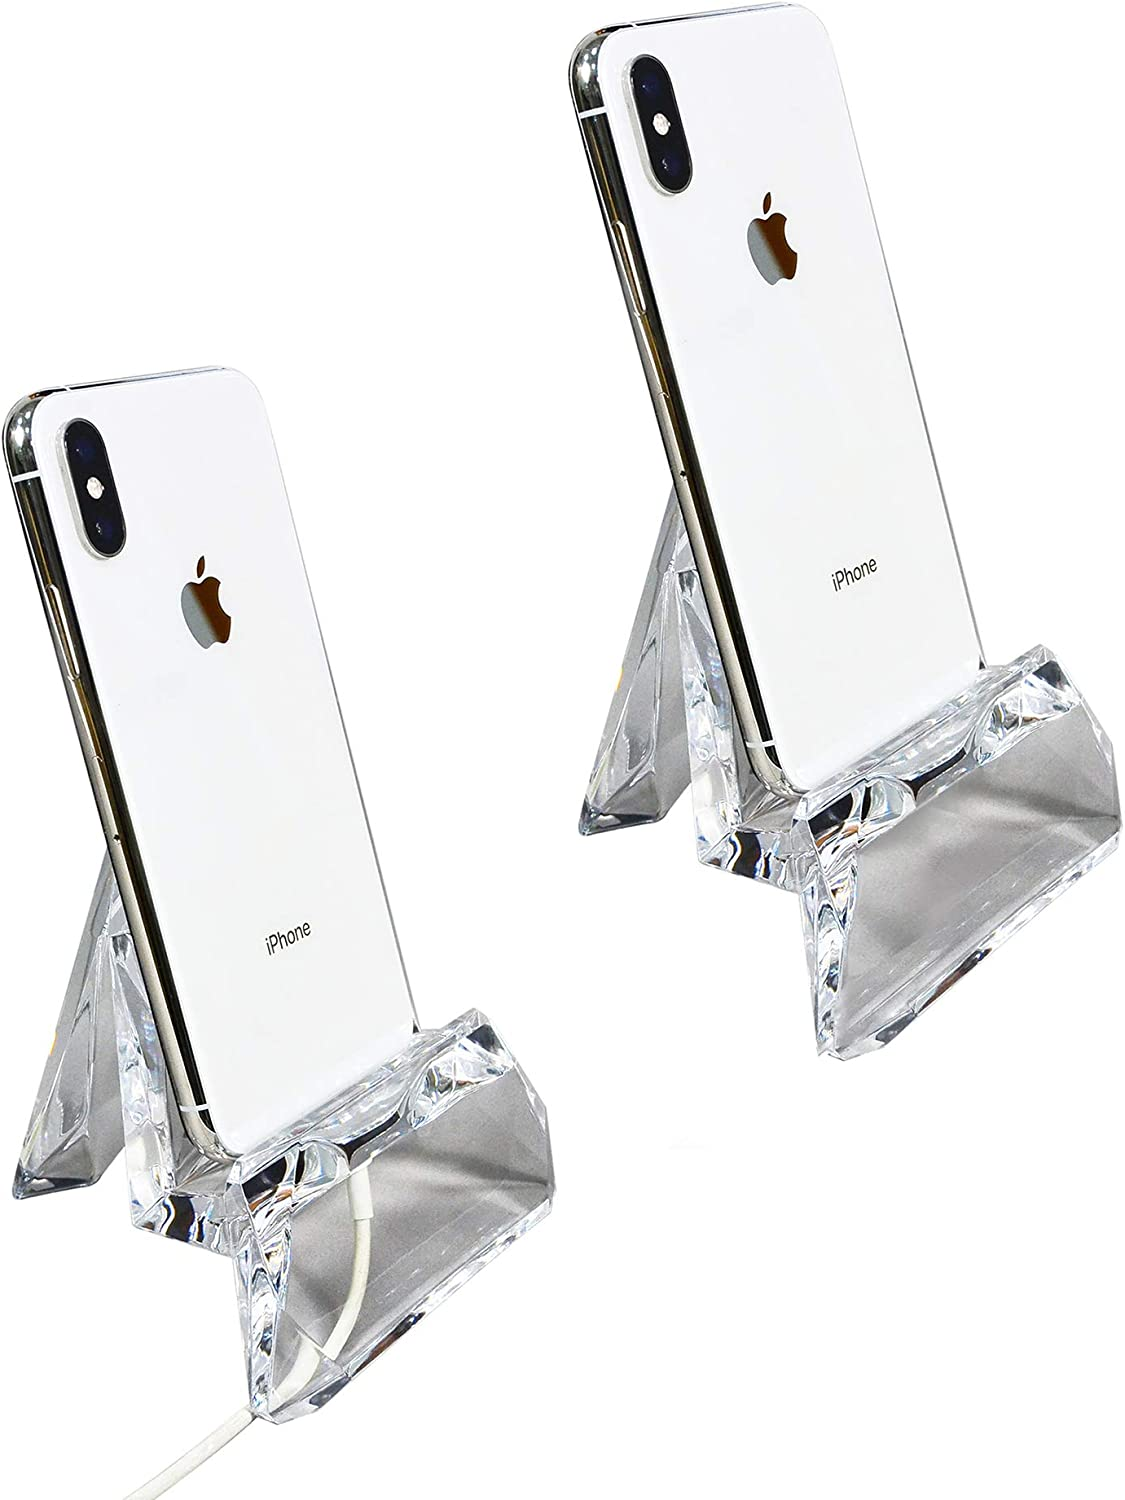 COM.TOP - Acrylic Cell Phone Holder, Mobile Phone Stand, Tablet Stand | Office Supplies, Stationery Organizer, Desk Accessories - Clear, 2 Pack